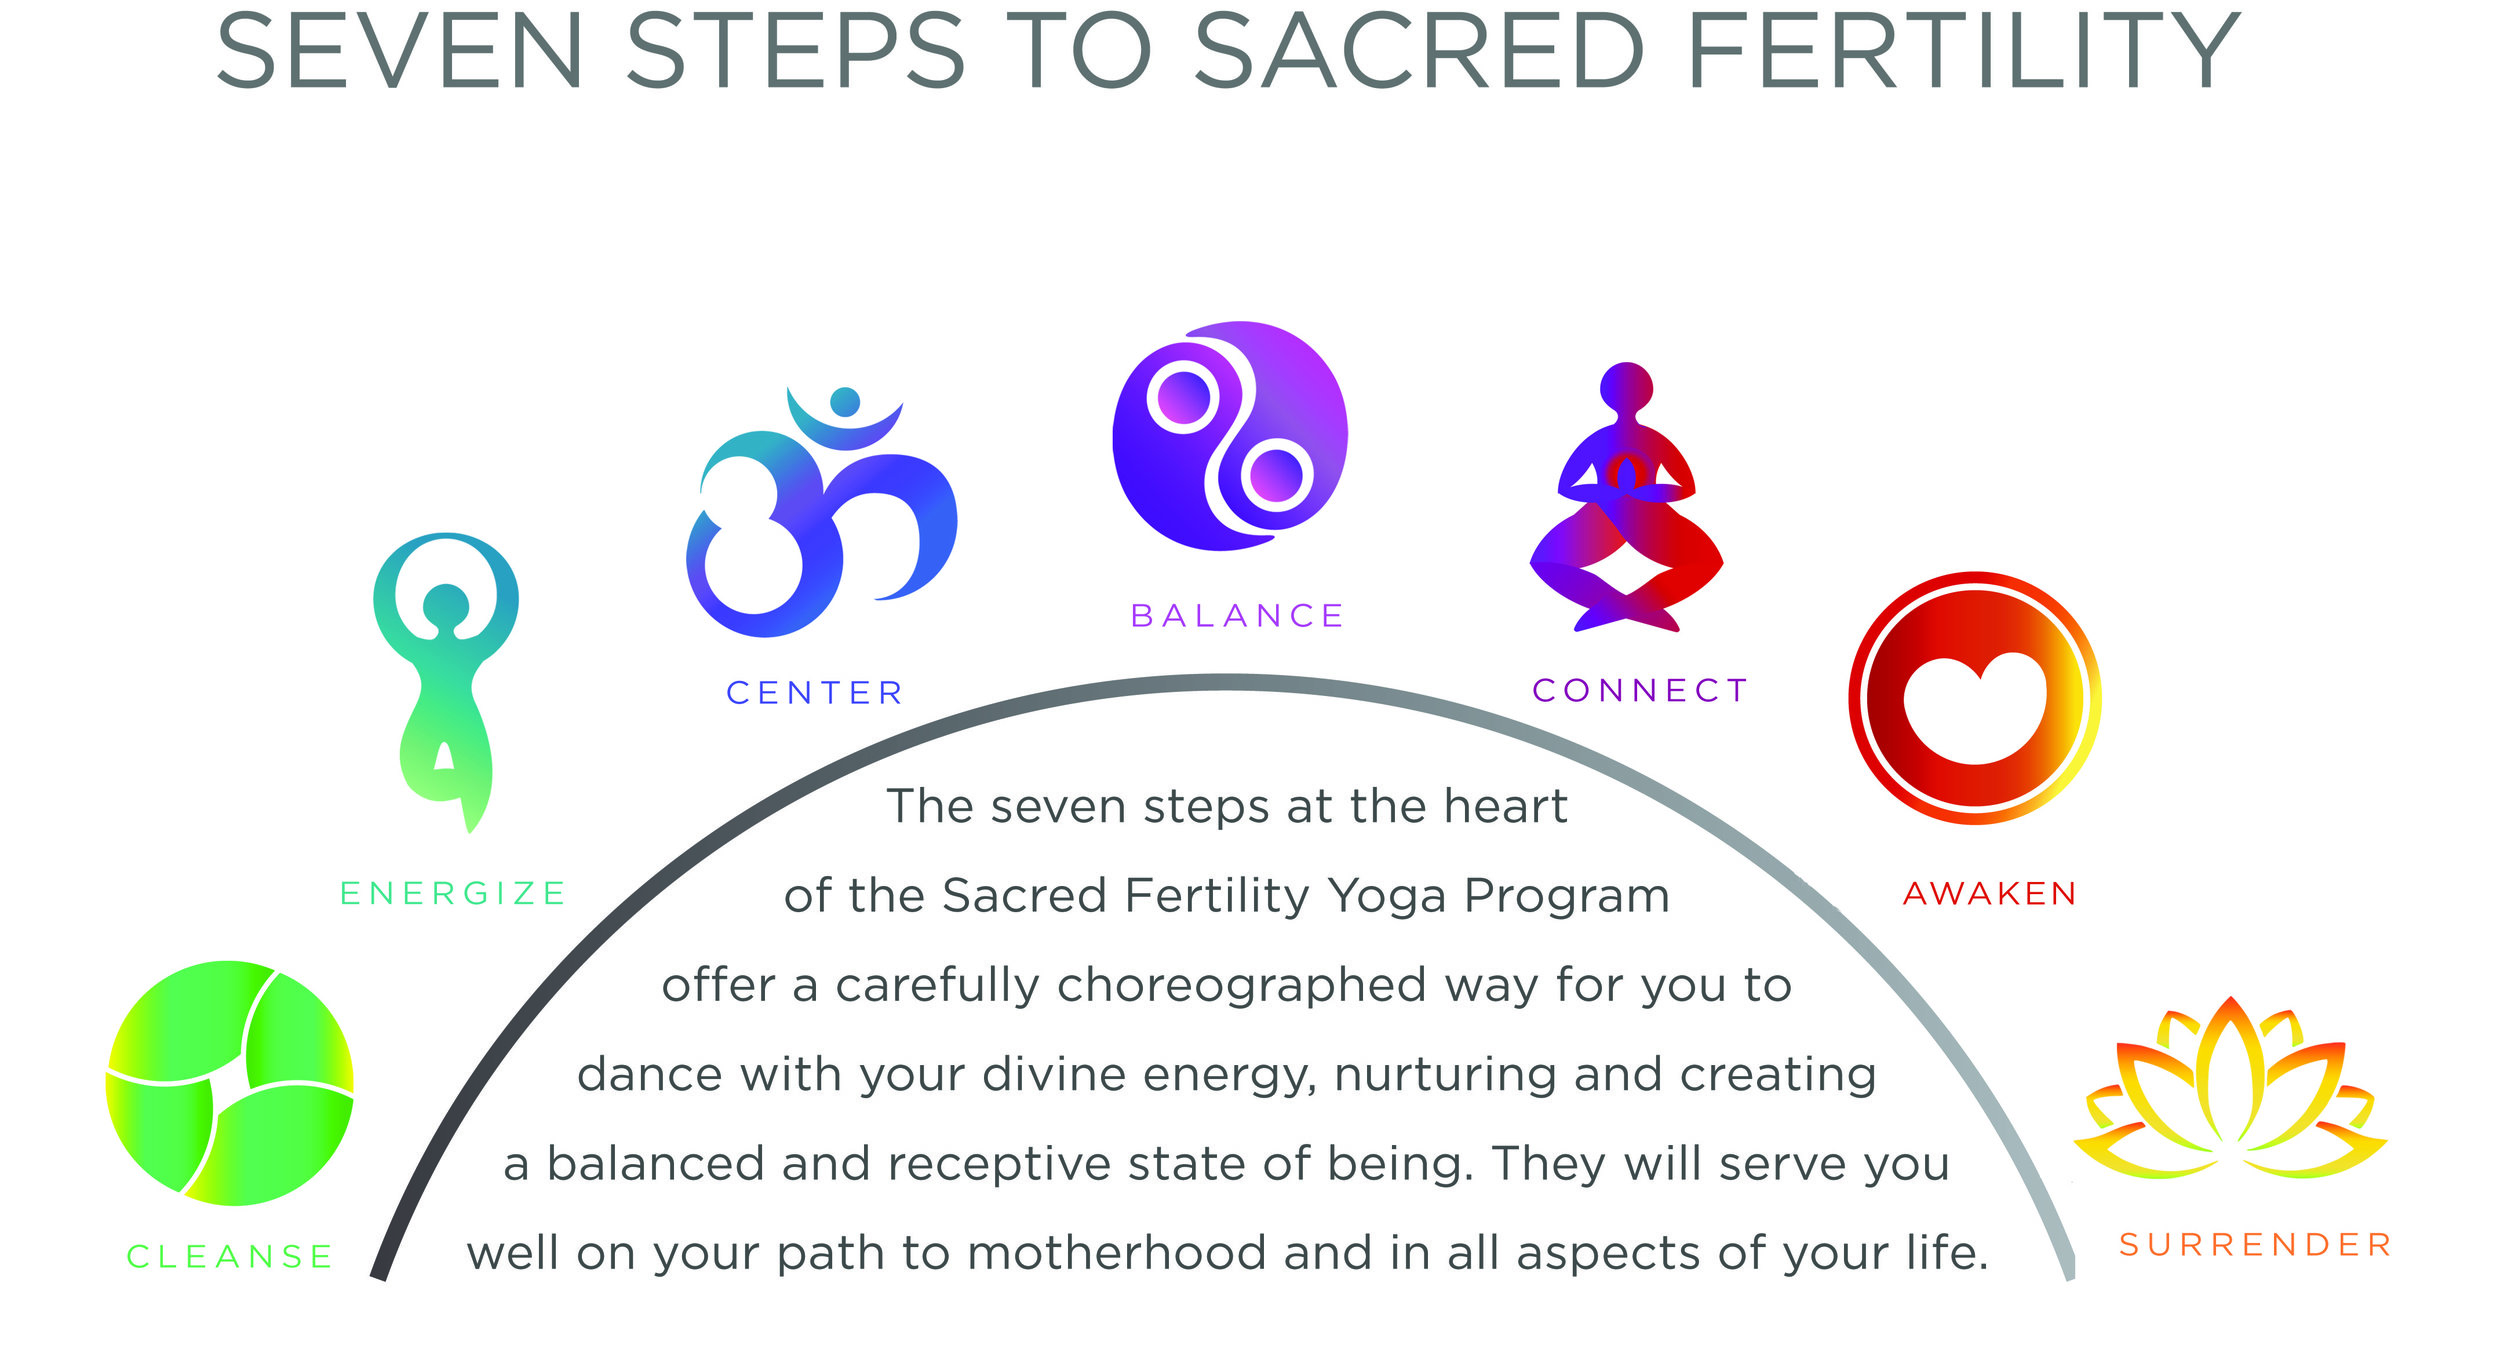 Seven Steps to Sacred FertilityIcons copy.jpg